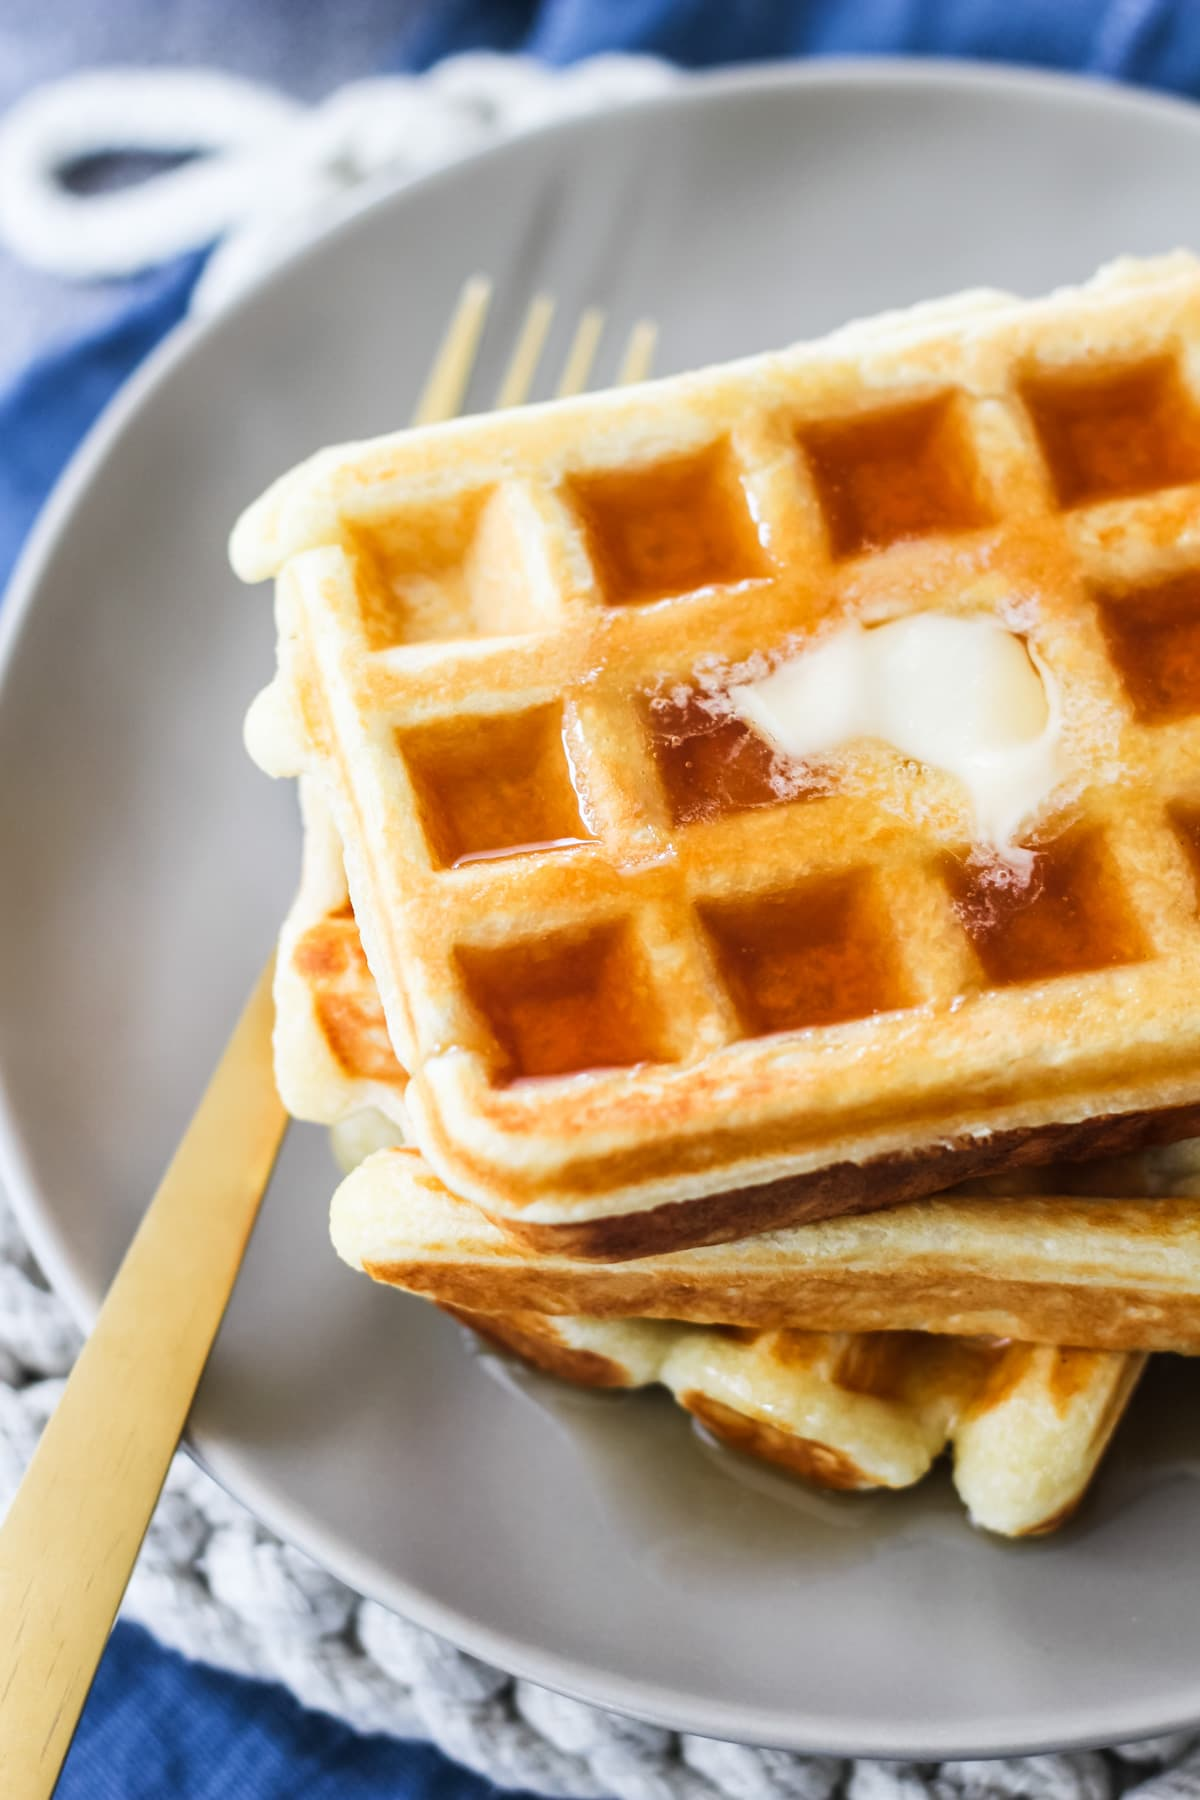 a top down view of a stack of sour cream waffles. the top waffle is has melted butter and syrup. in the background is a grey plate, gold fork, beige hot pad and blue linen napkin